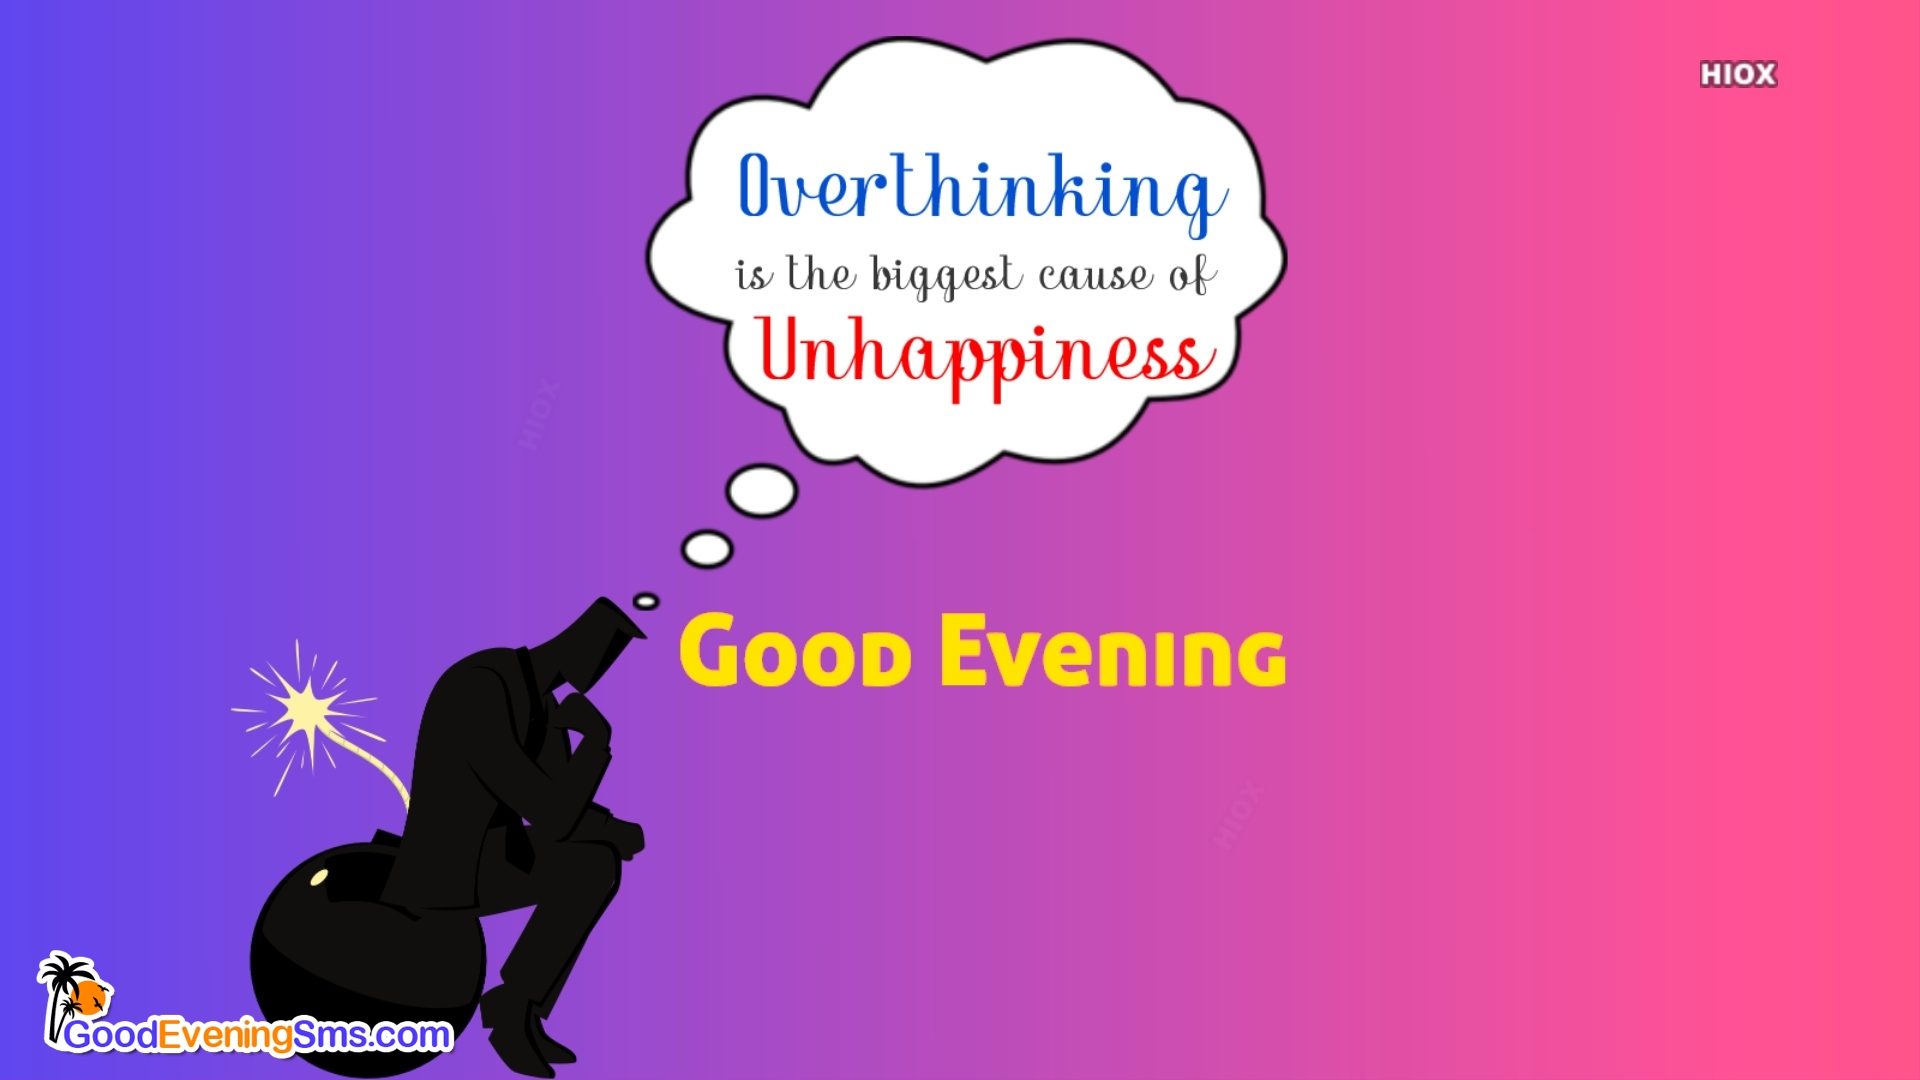 Overthinking Is The Biggest Cause Of Unhappiness. Good Evening